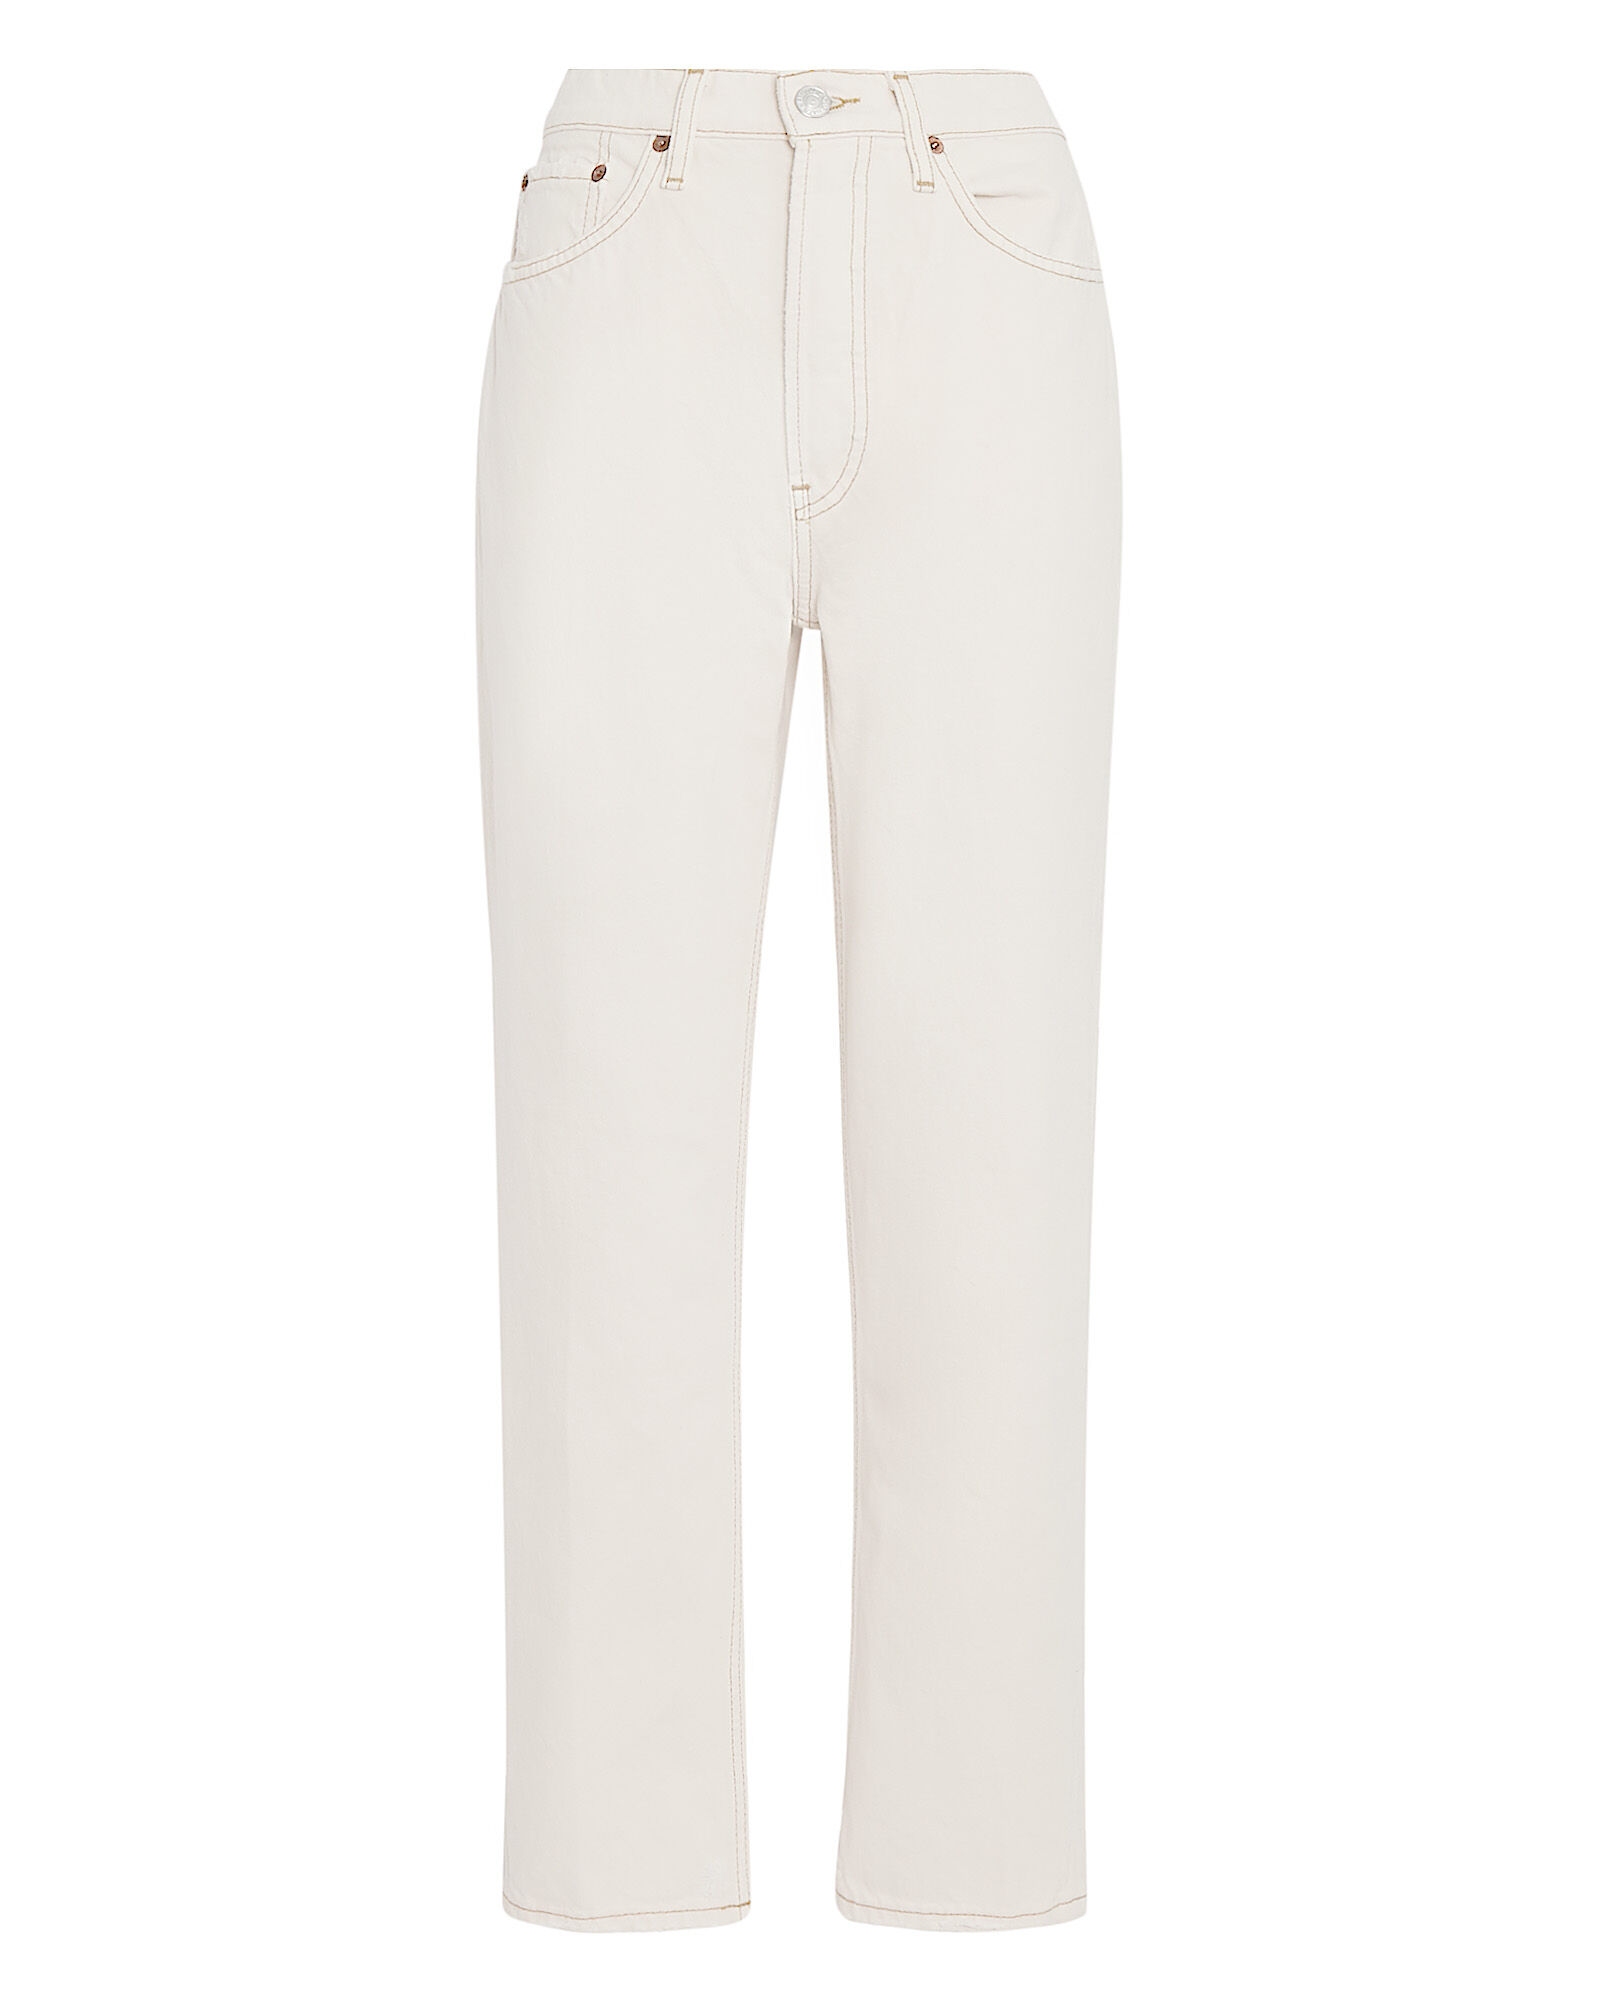 70s High-Rise Stove Pipe Jeans, VINTAGE WHITE, hi-res